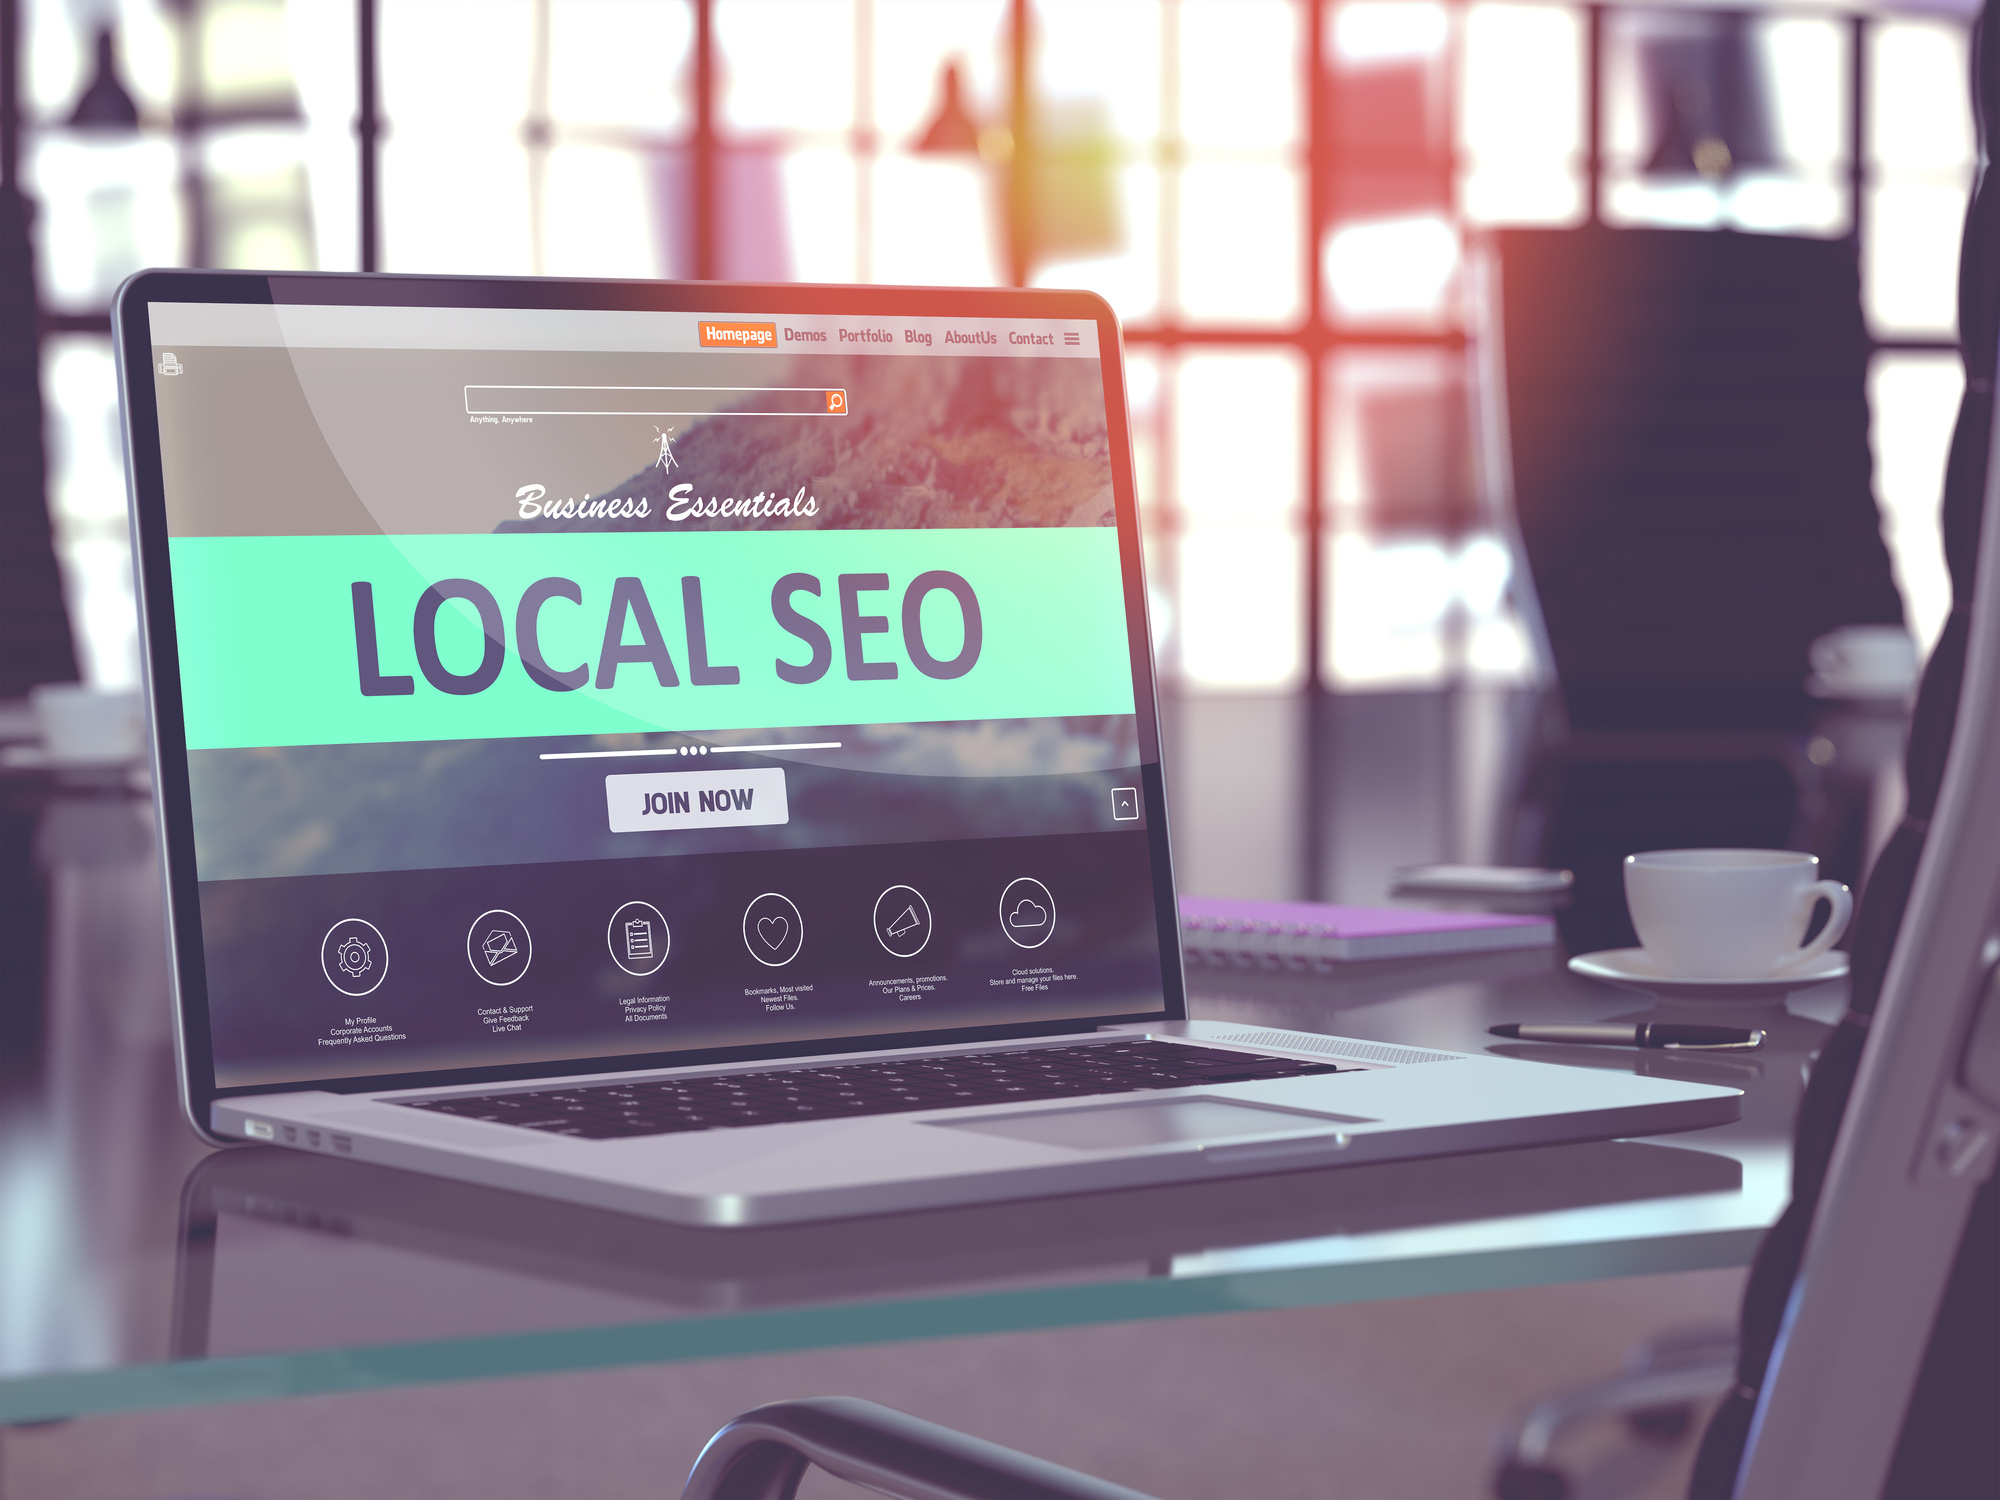 Local SEO vs Organic SEO: What's the Difference?